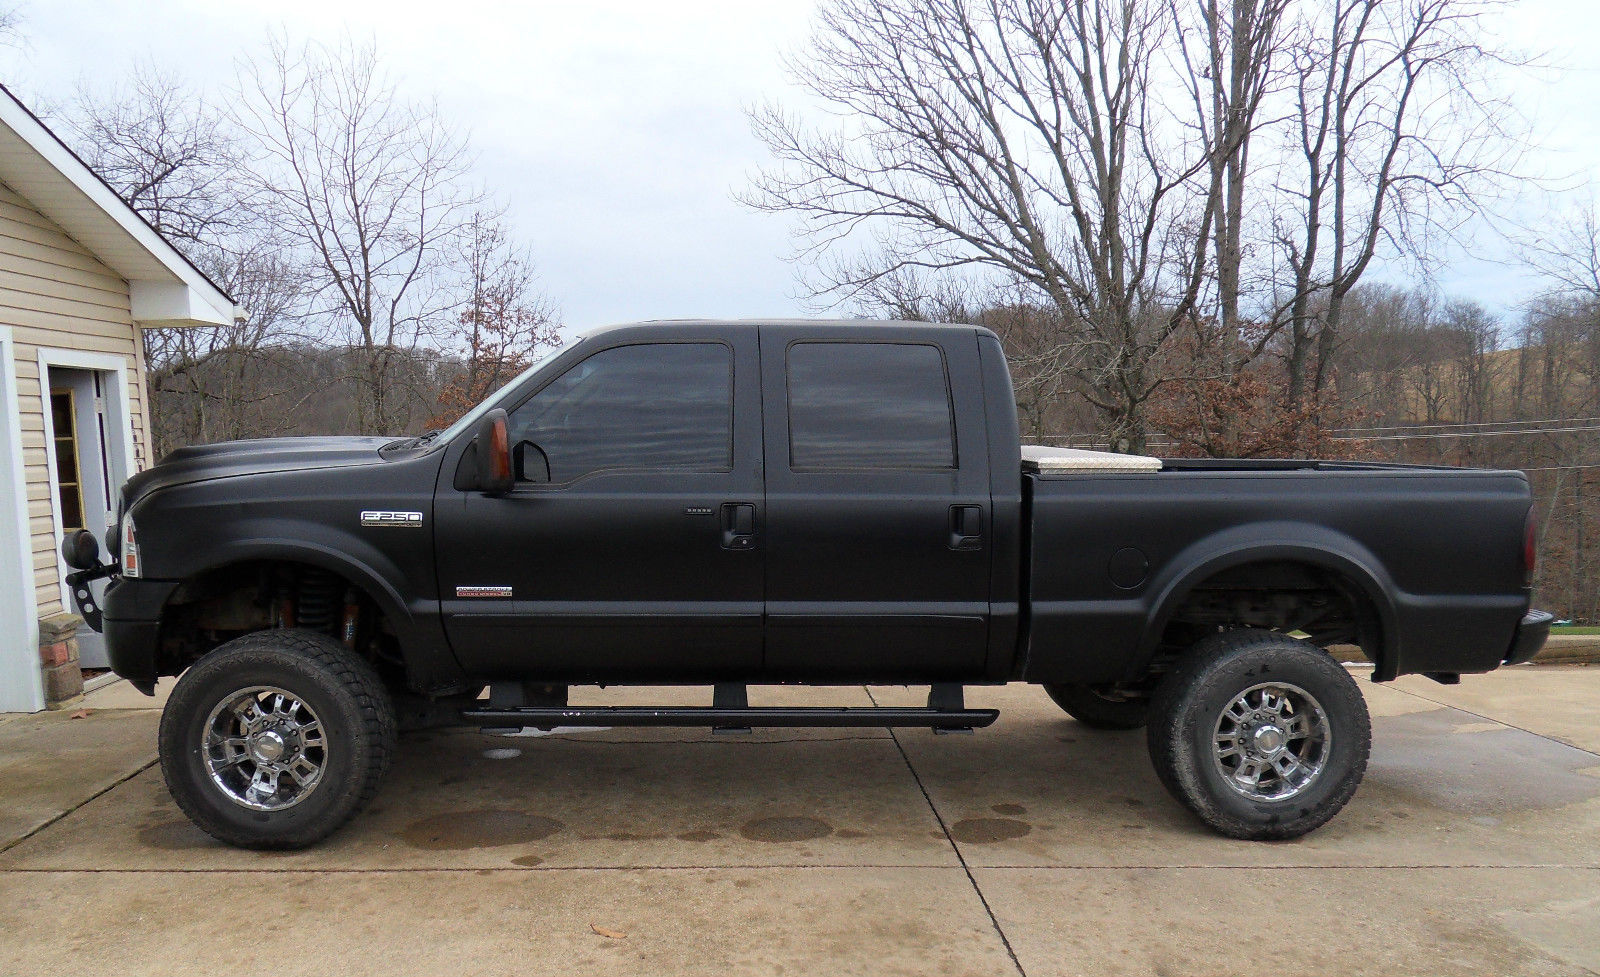 Lifted Trucks For Sale In Ohio >> Ford F 250 Superduty Powerstroke for sale